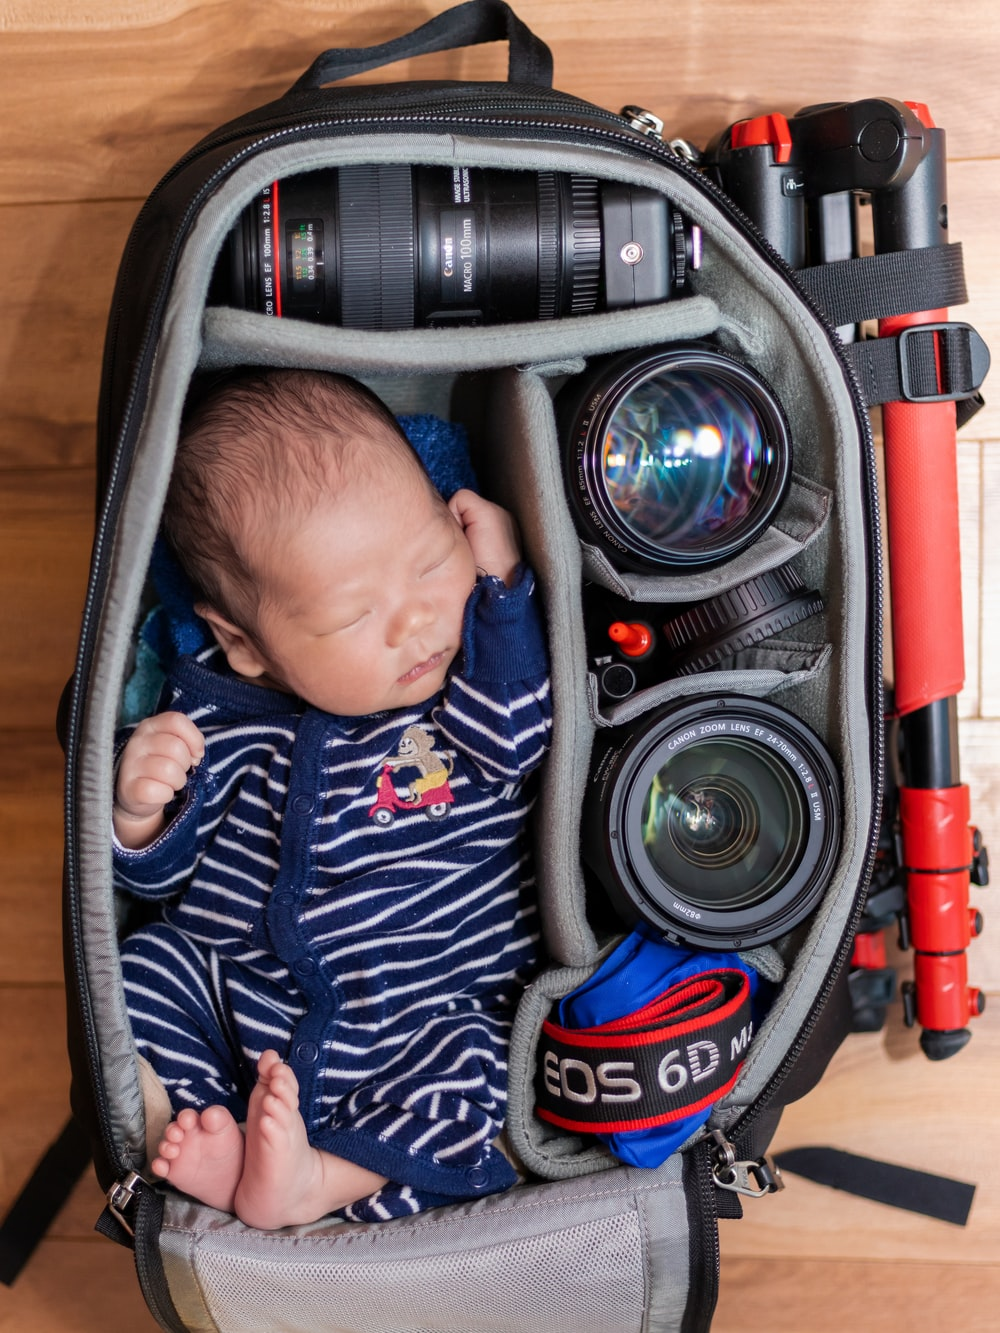 sleeping baby in a camera bag with camera lenses